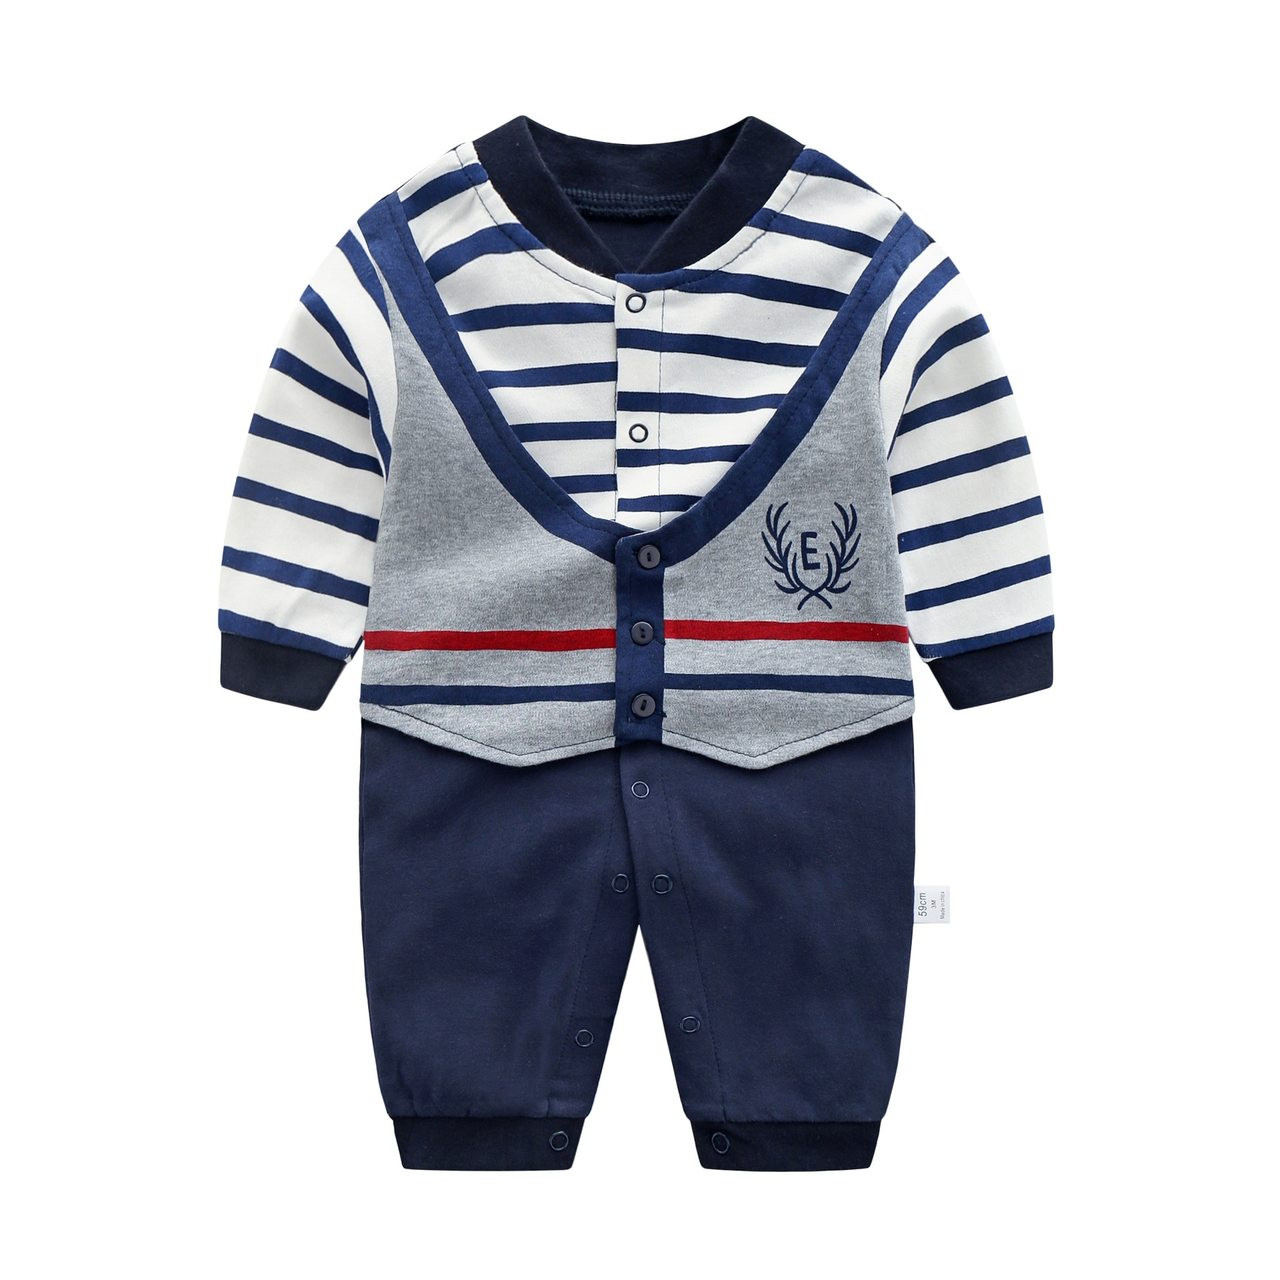 bd1b8a7b3c12 ... Baby Jumpsuit Autumn Clothing Newborn Cotton Clothes Infant Long  Sleeved Rompers Baby Boys Bow Tie Climbing ...